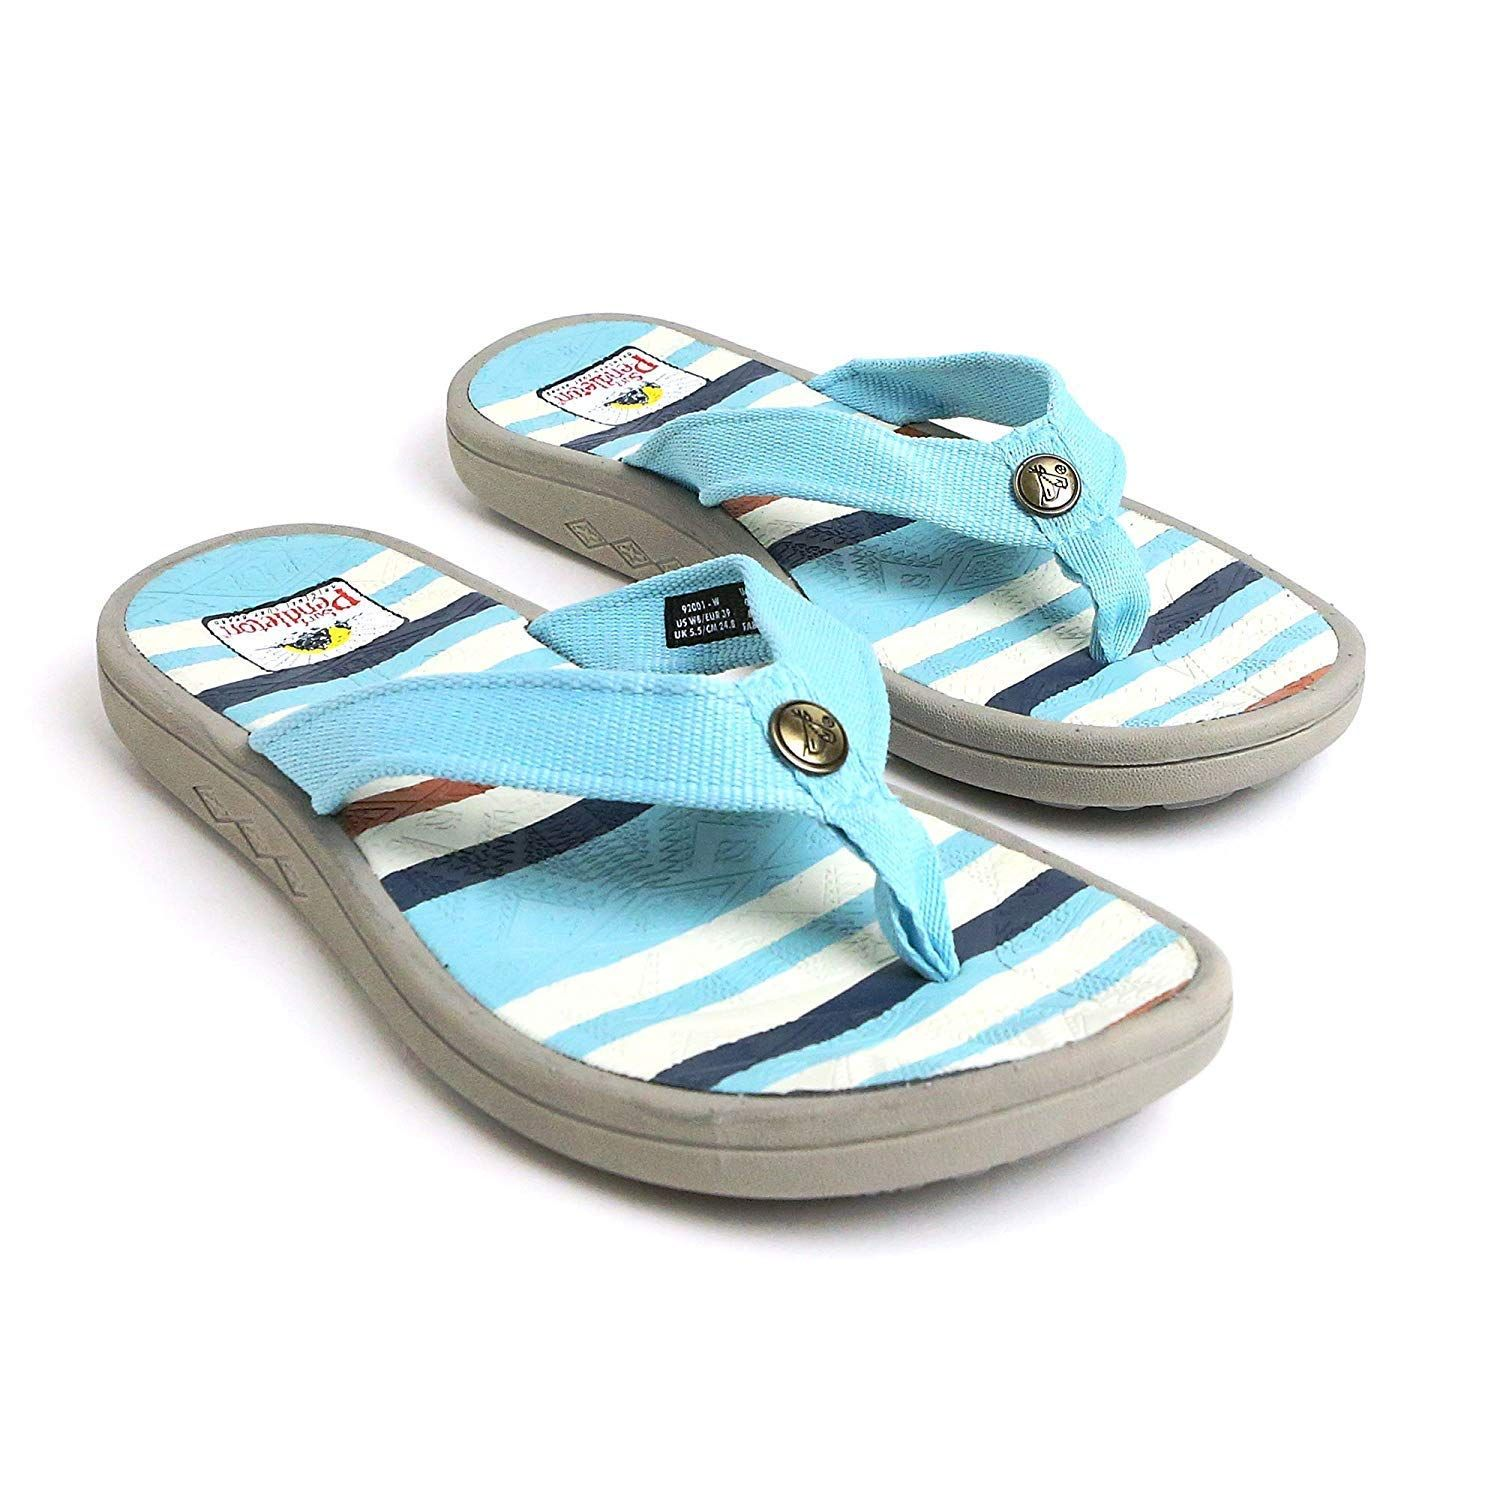 1a854dd2eca3 Pendleton National Parks Flip Flop - Women s     Hope you do enjoy our  photo. (This is our affiliate link)  womenssportsandals